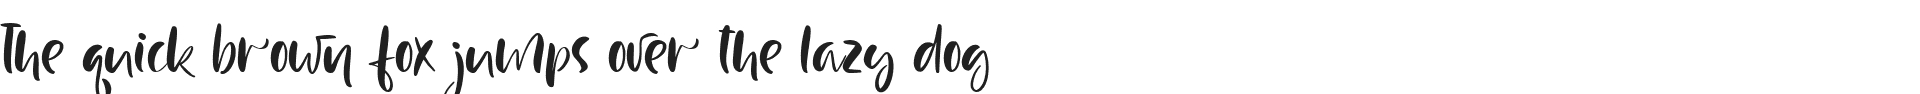 13 Cute Handwritten Fonts Bundle in 2020 - image.php?font=JustCase